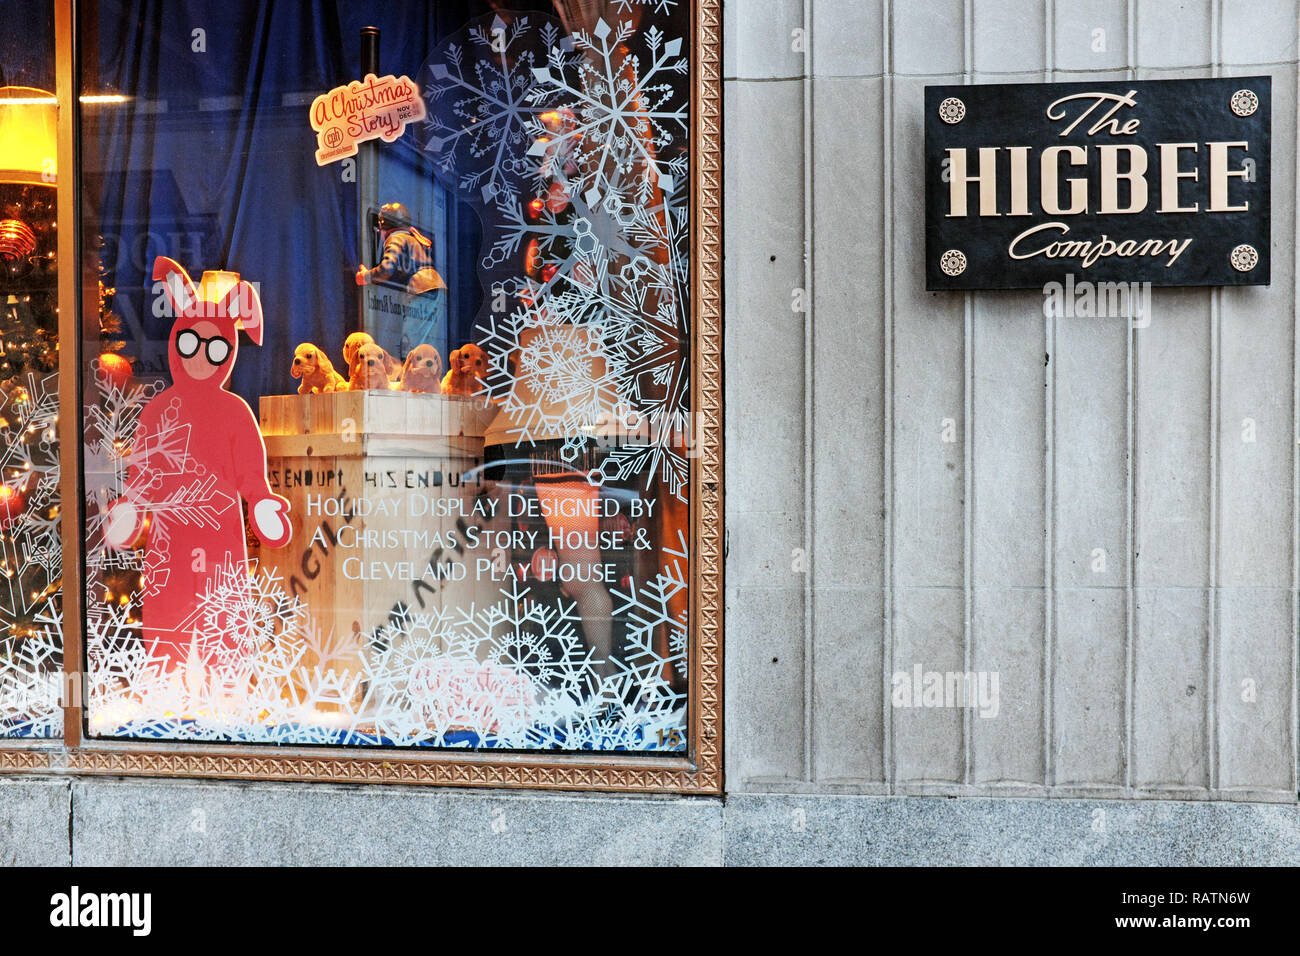 The Higbee Company building on Public Square in downtown Cleveland, Ohio, USA Christmas window display of 'A Christmas Story' movie. - Stock Image